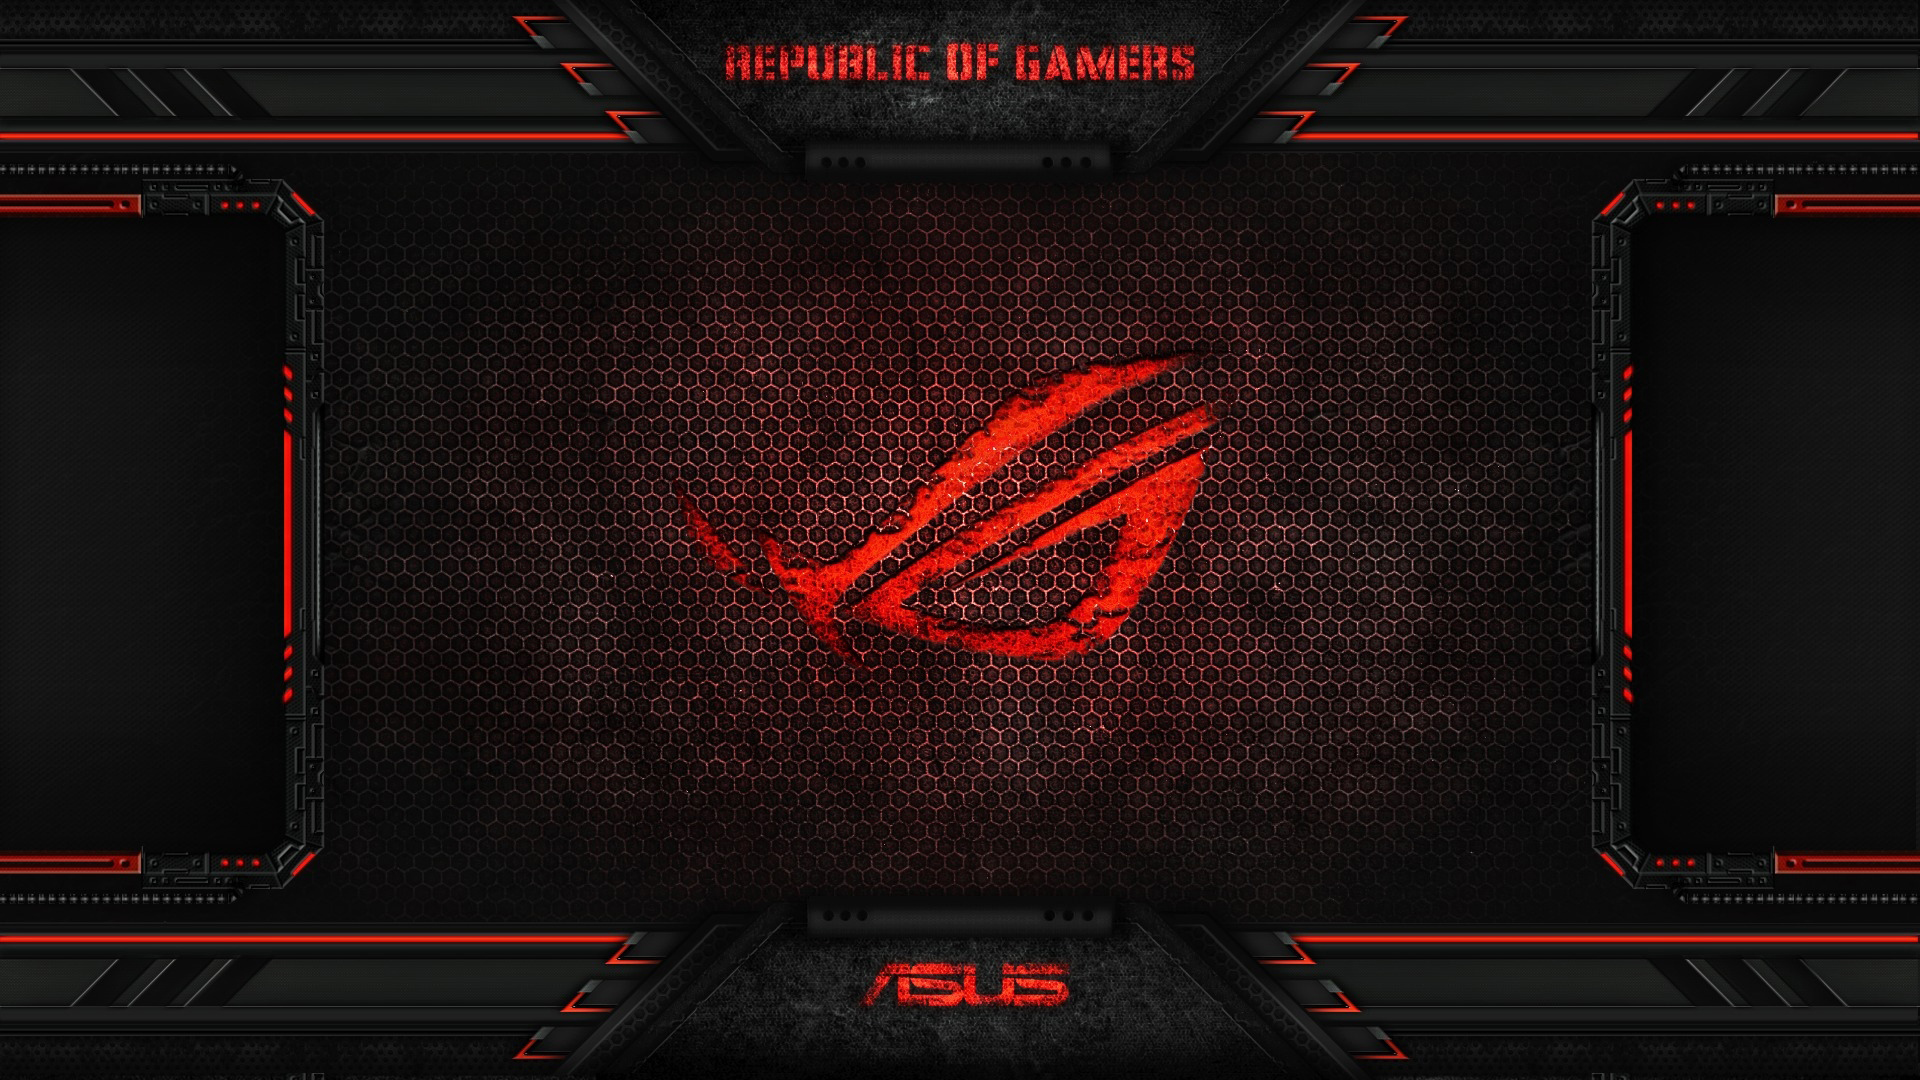 republic of gamers asus wallpapers55com   Best Wallpapers for PCs 1920x1080